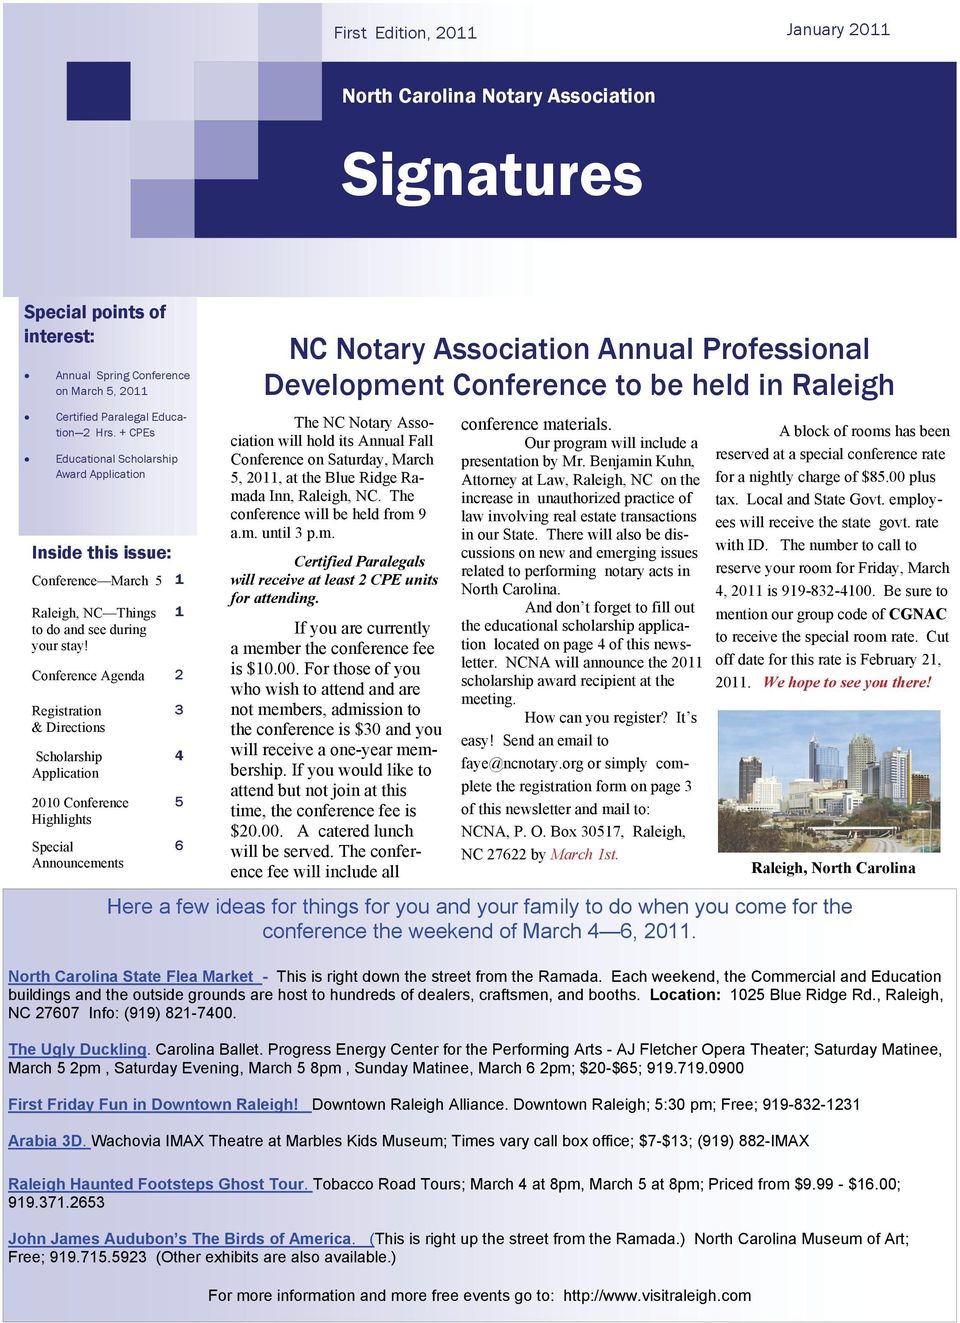 1 Conference Agenda 2 Registration & Directions Scholarship Application 2010 Conference Highlights Special Announcements 3 4 5 6 NC Notary Association Annual Professional Development Conference to be